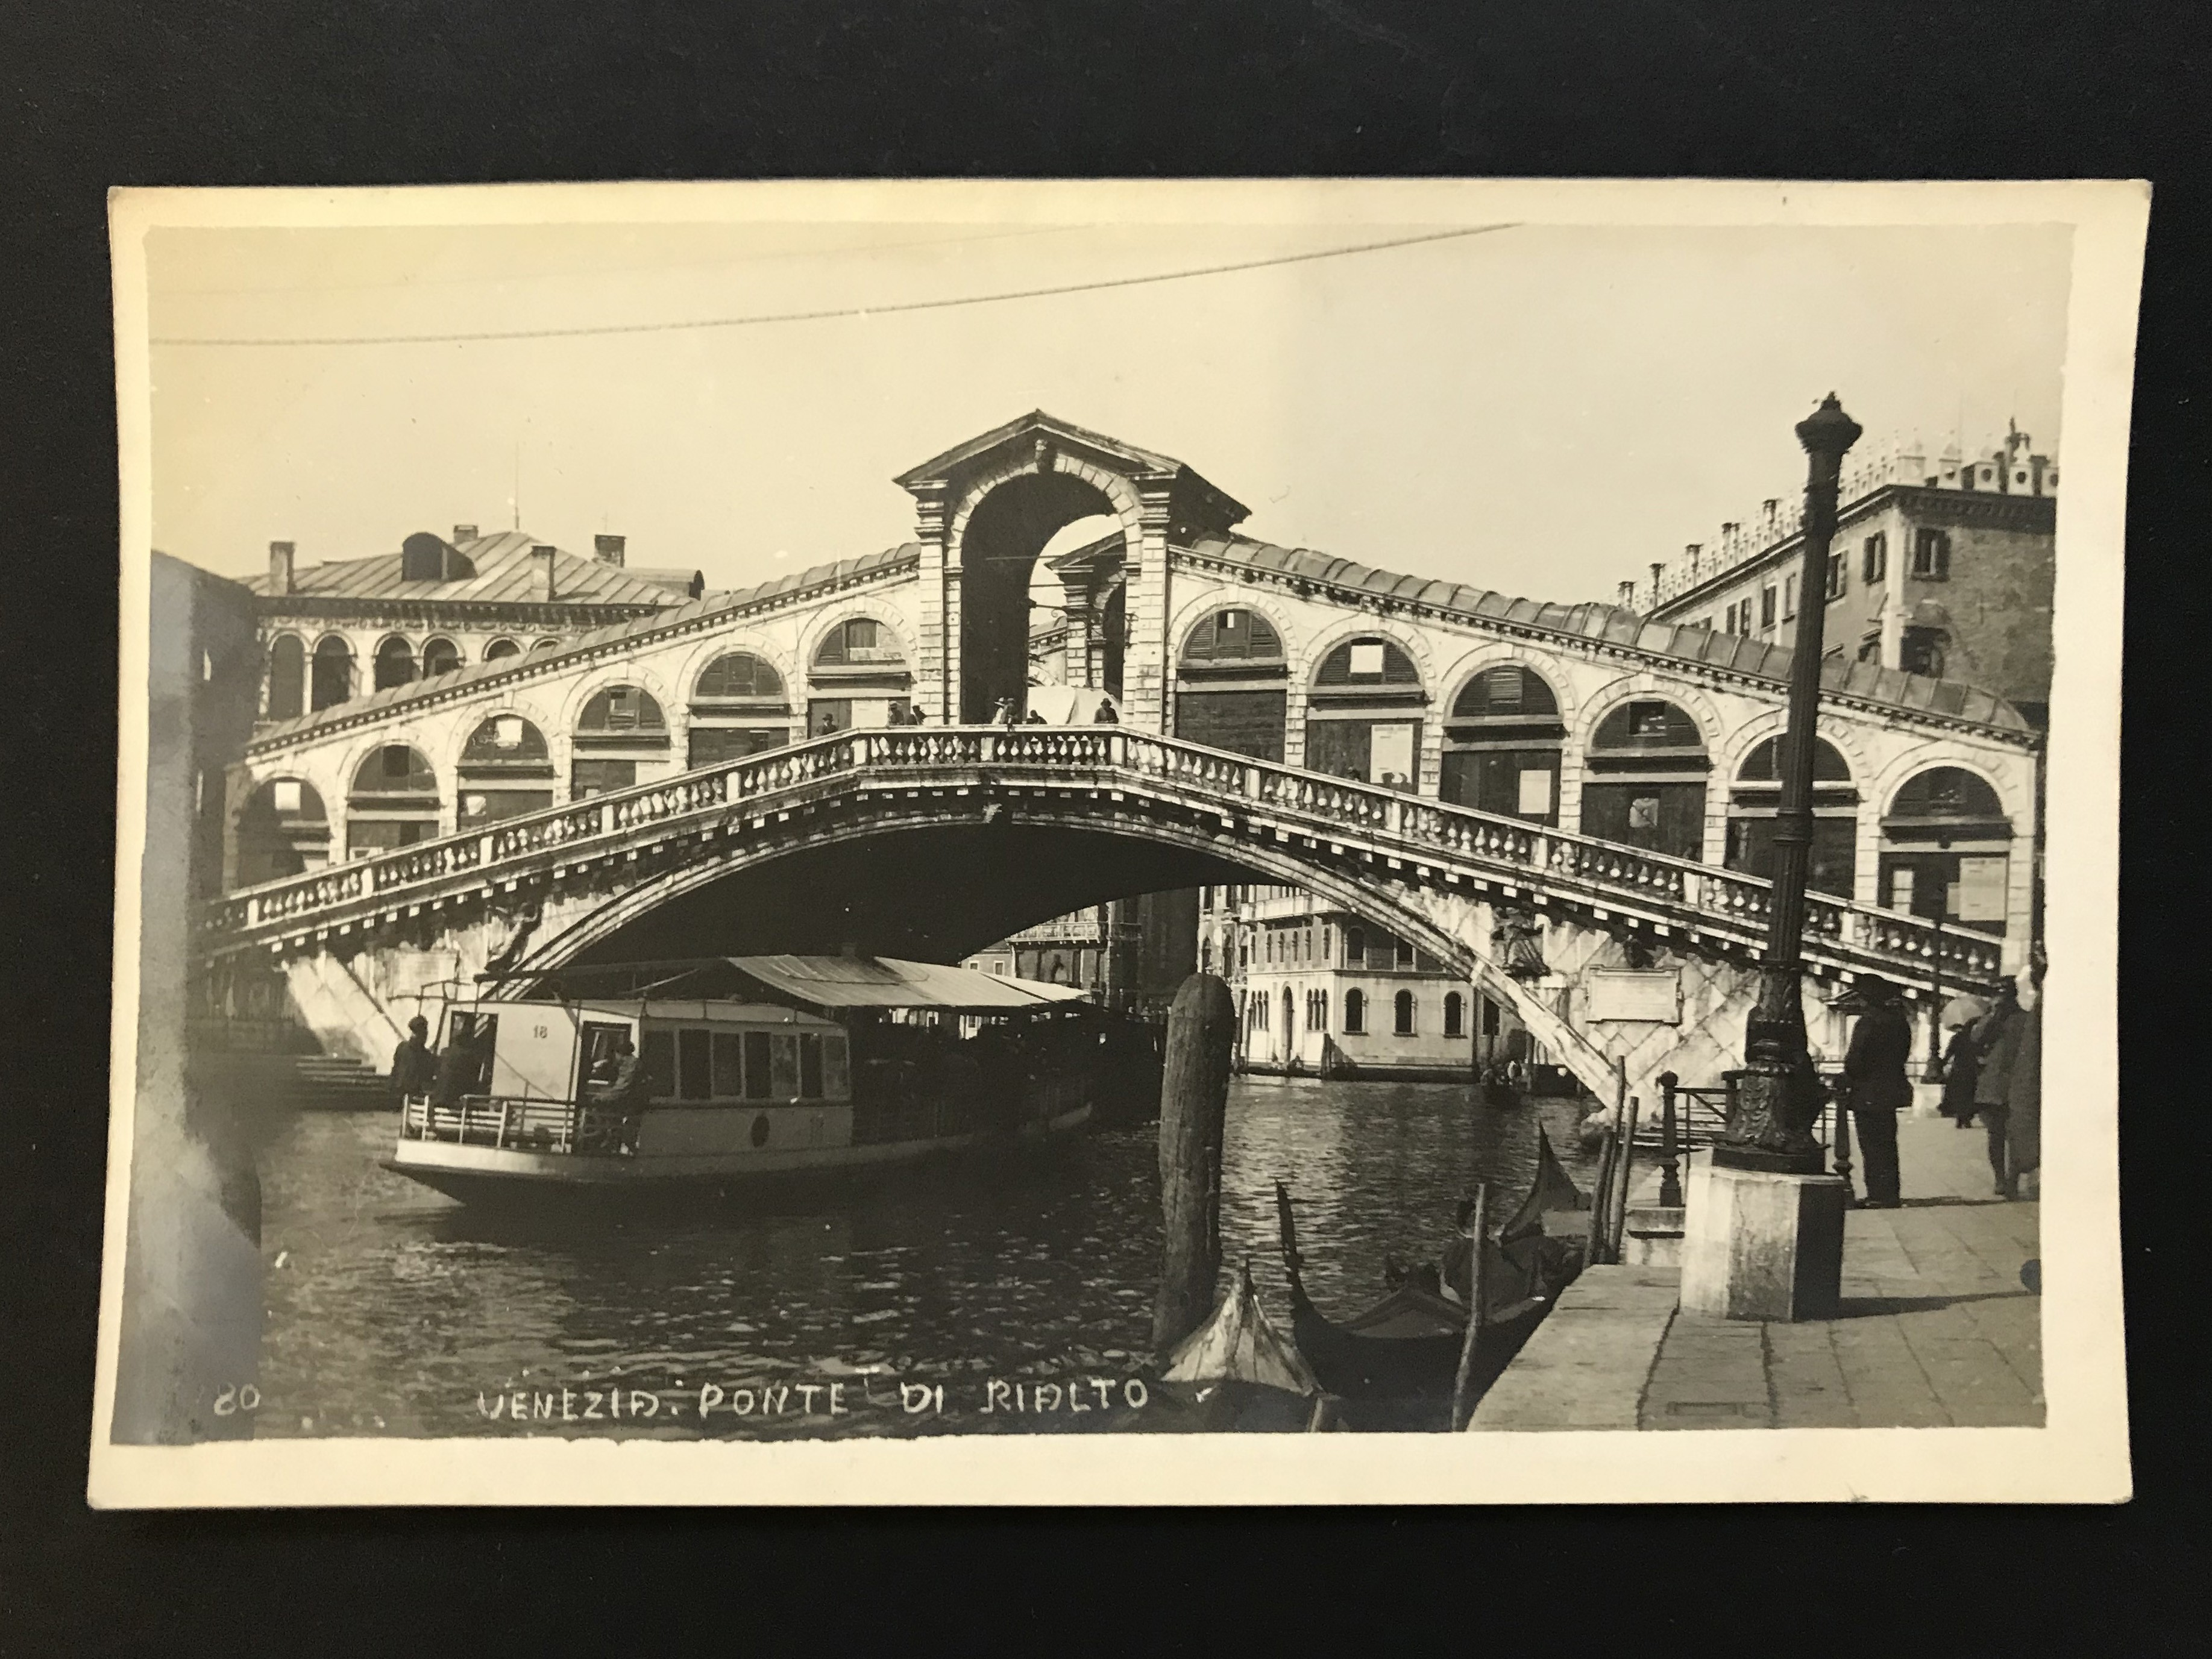 SELECTION OF VENICE RELATED POSTCARDS - Image 38 of 53